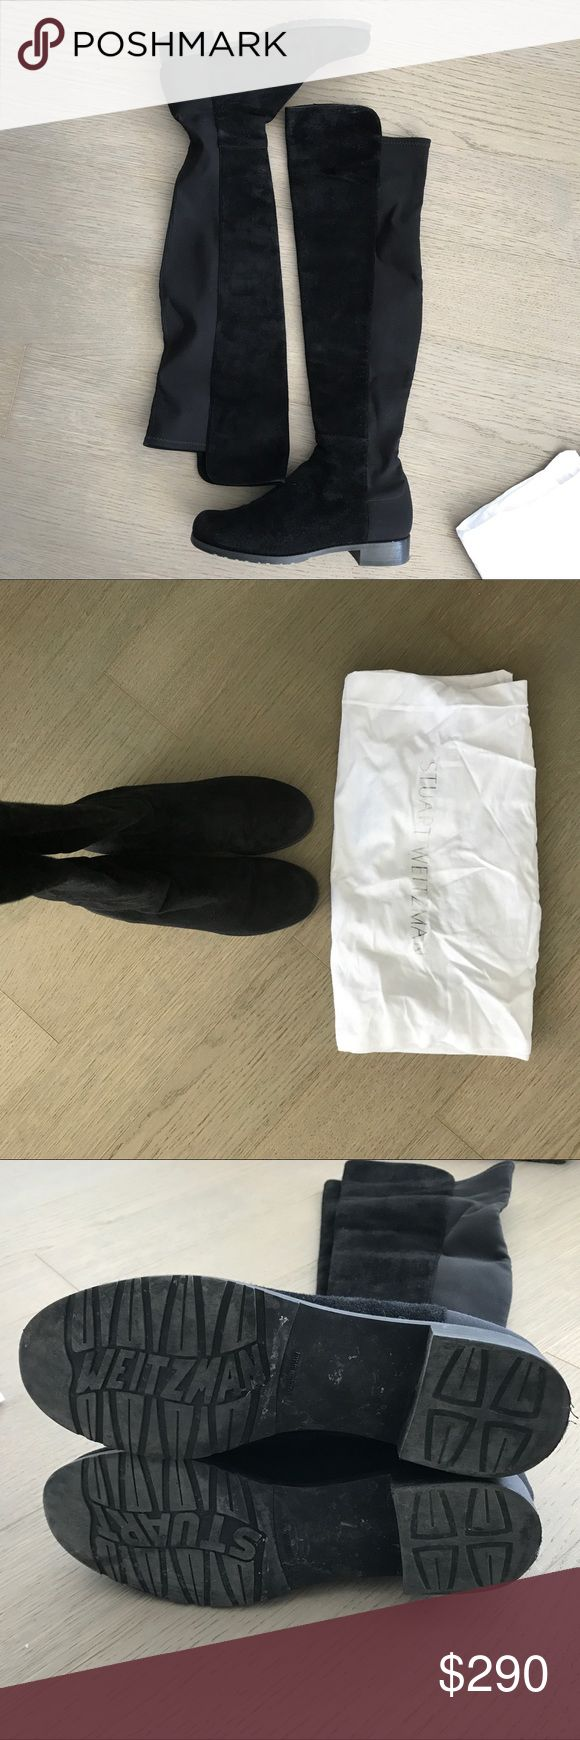 Authentic Stuart Weizman 5050 Over-The-Knee Boots Stuart Weizman signature 5050s, black suede leather, good condition, comes with dust bag, perfect for fall 🍁 Stuart Weitzman Shoes Over the Knee Boots